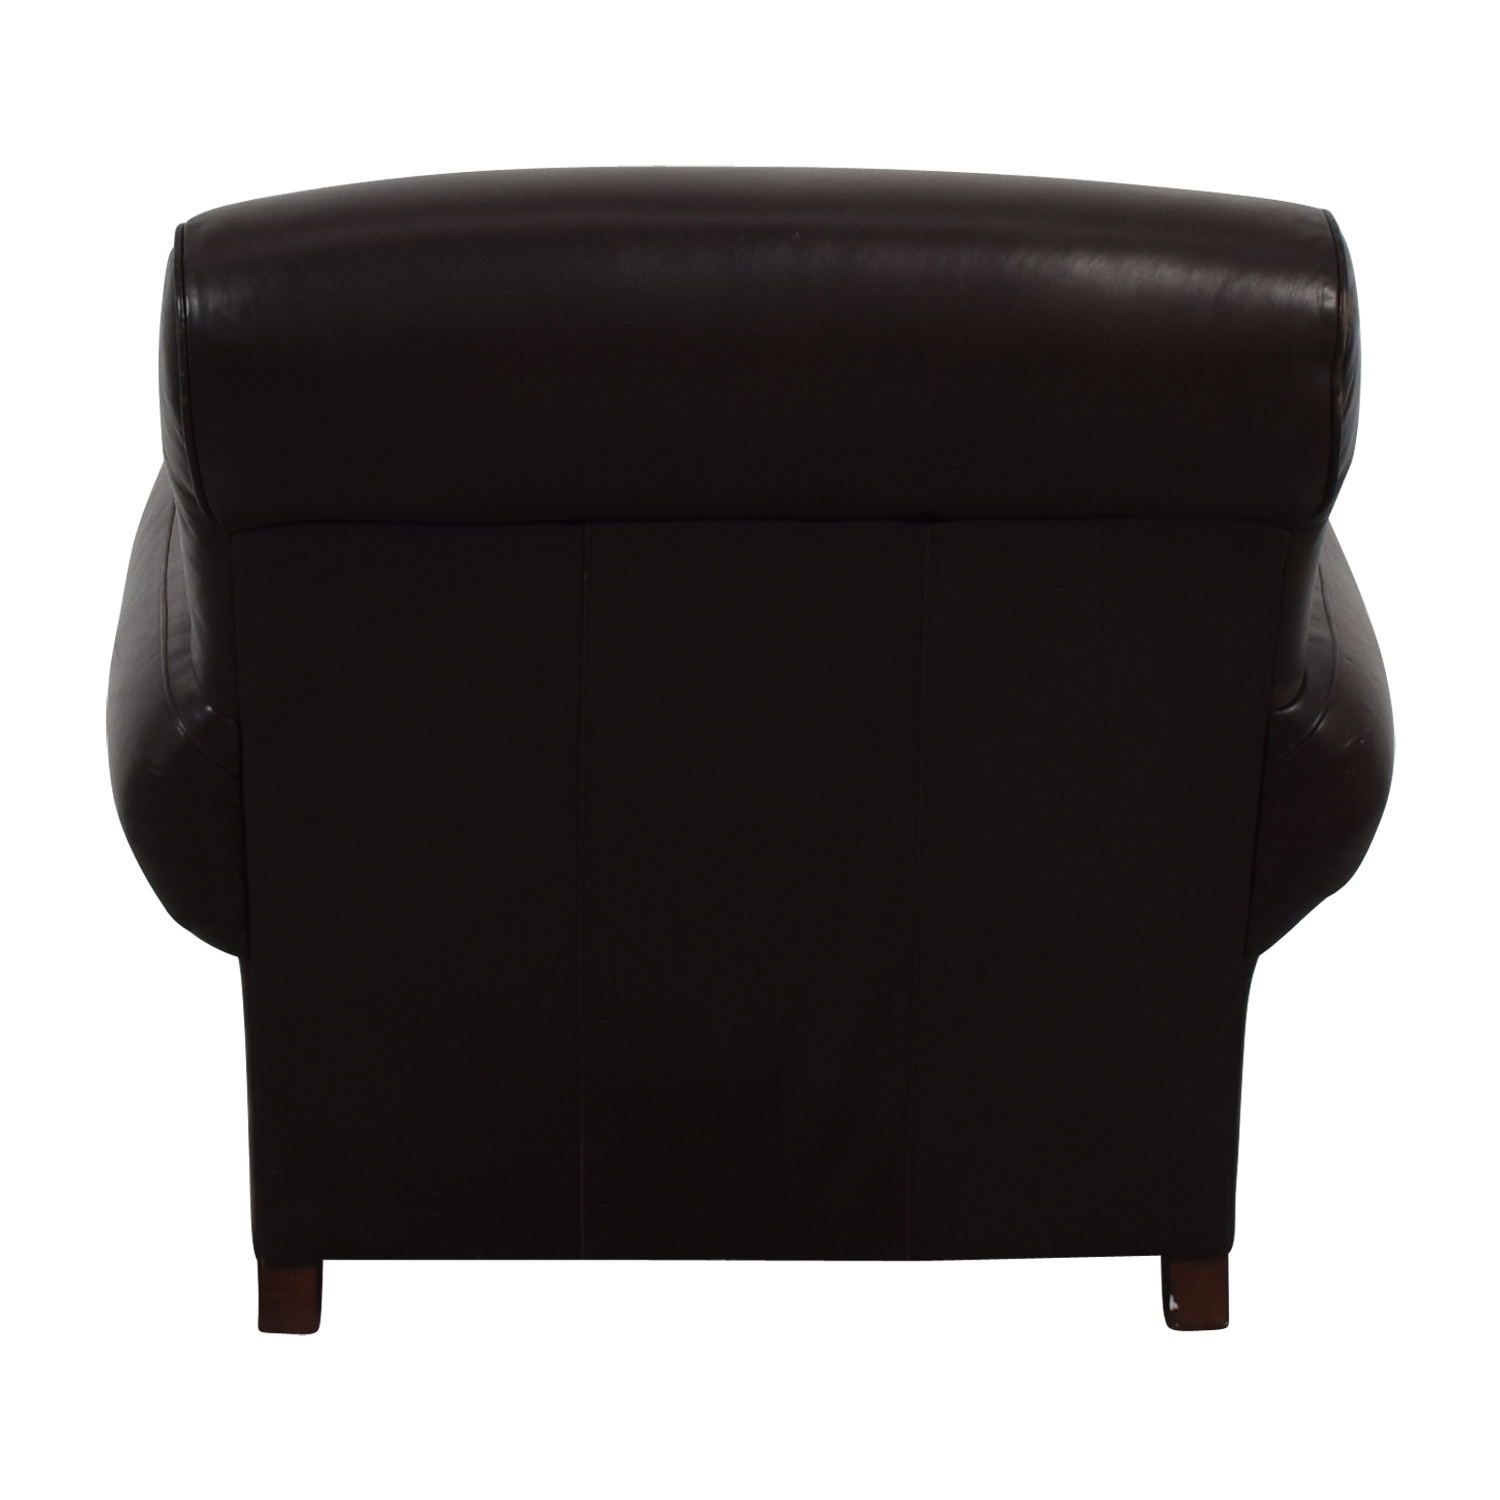 Pottery Barn Pottery Barn Brown Leather Chair on sale